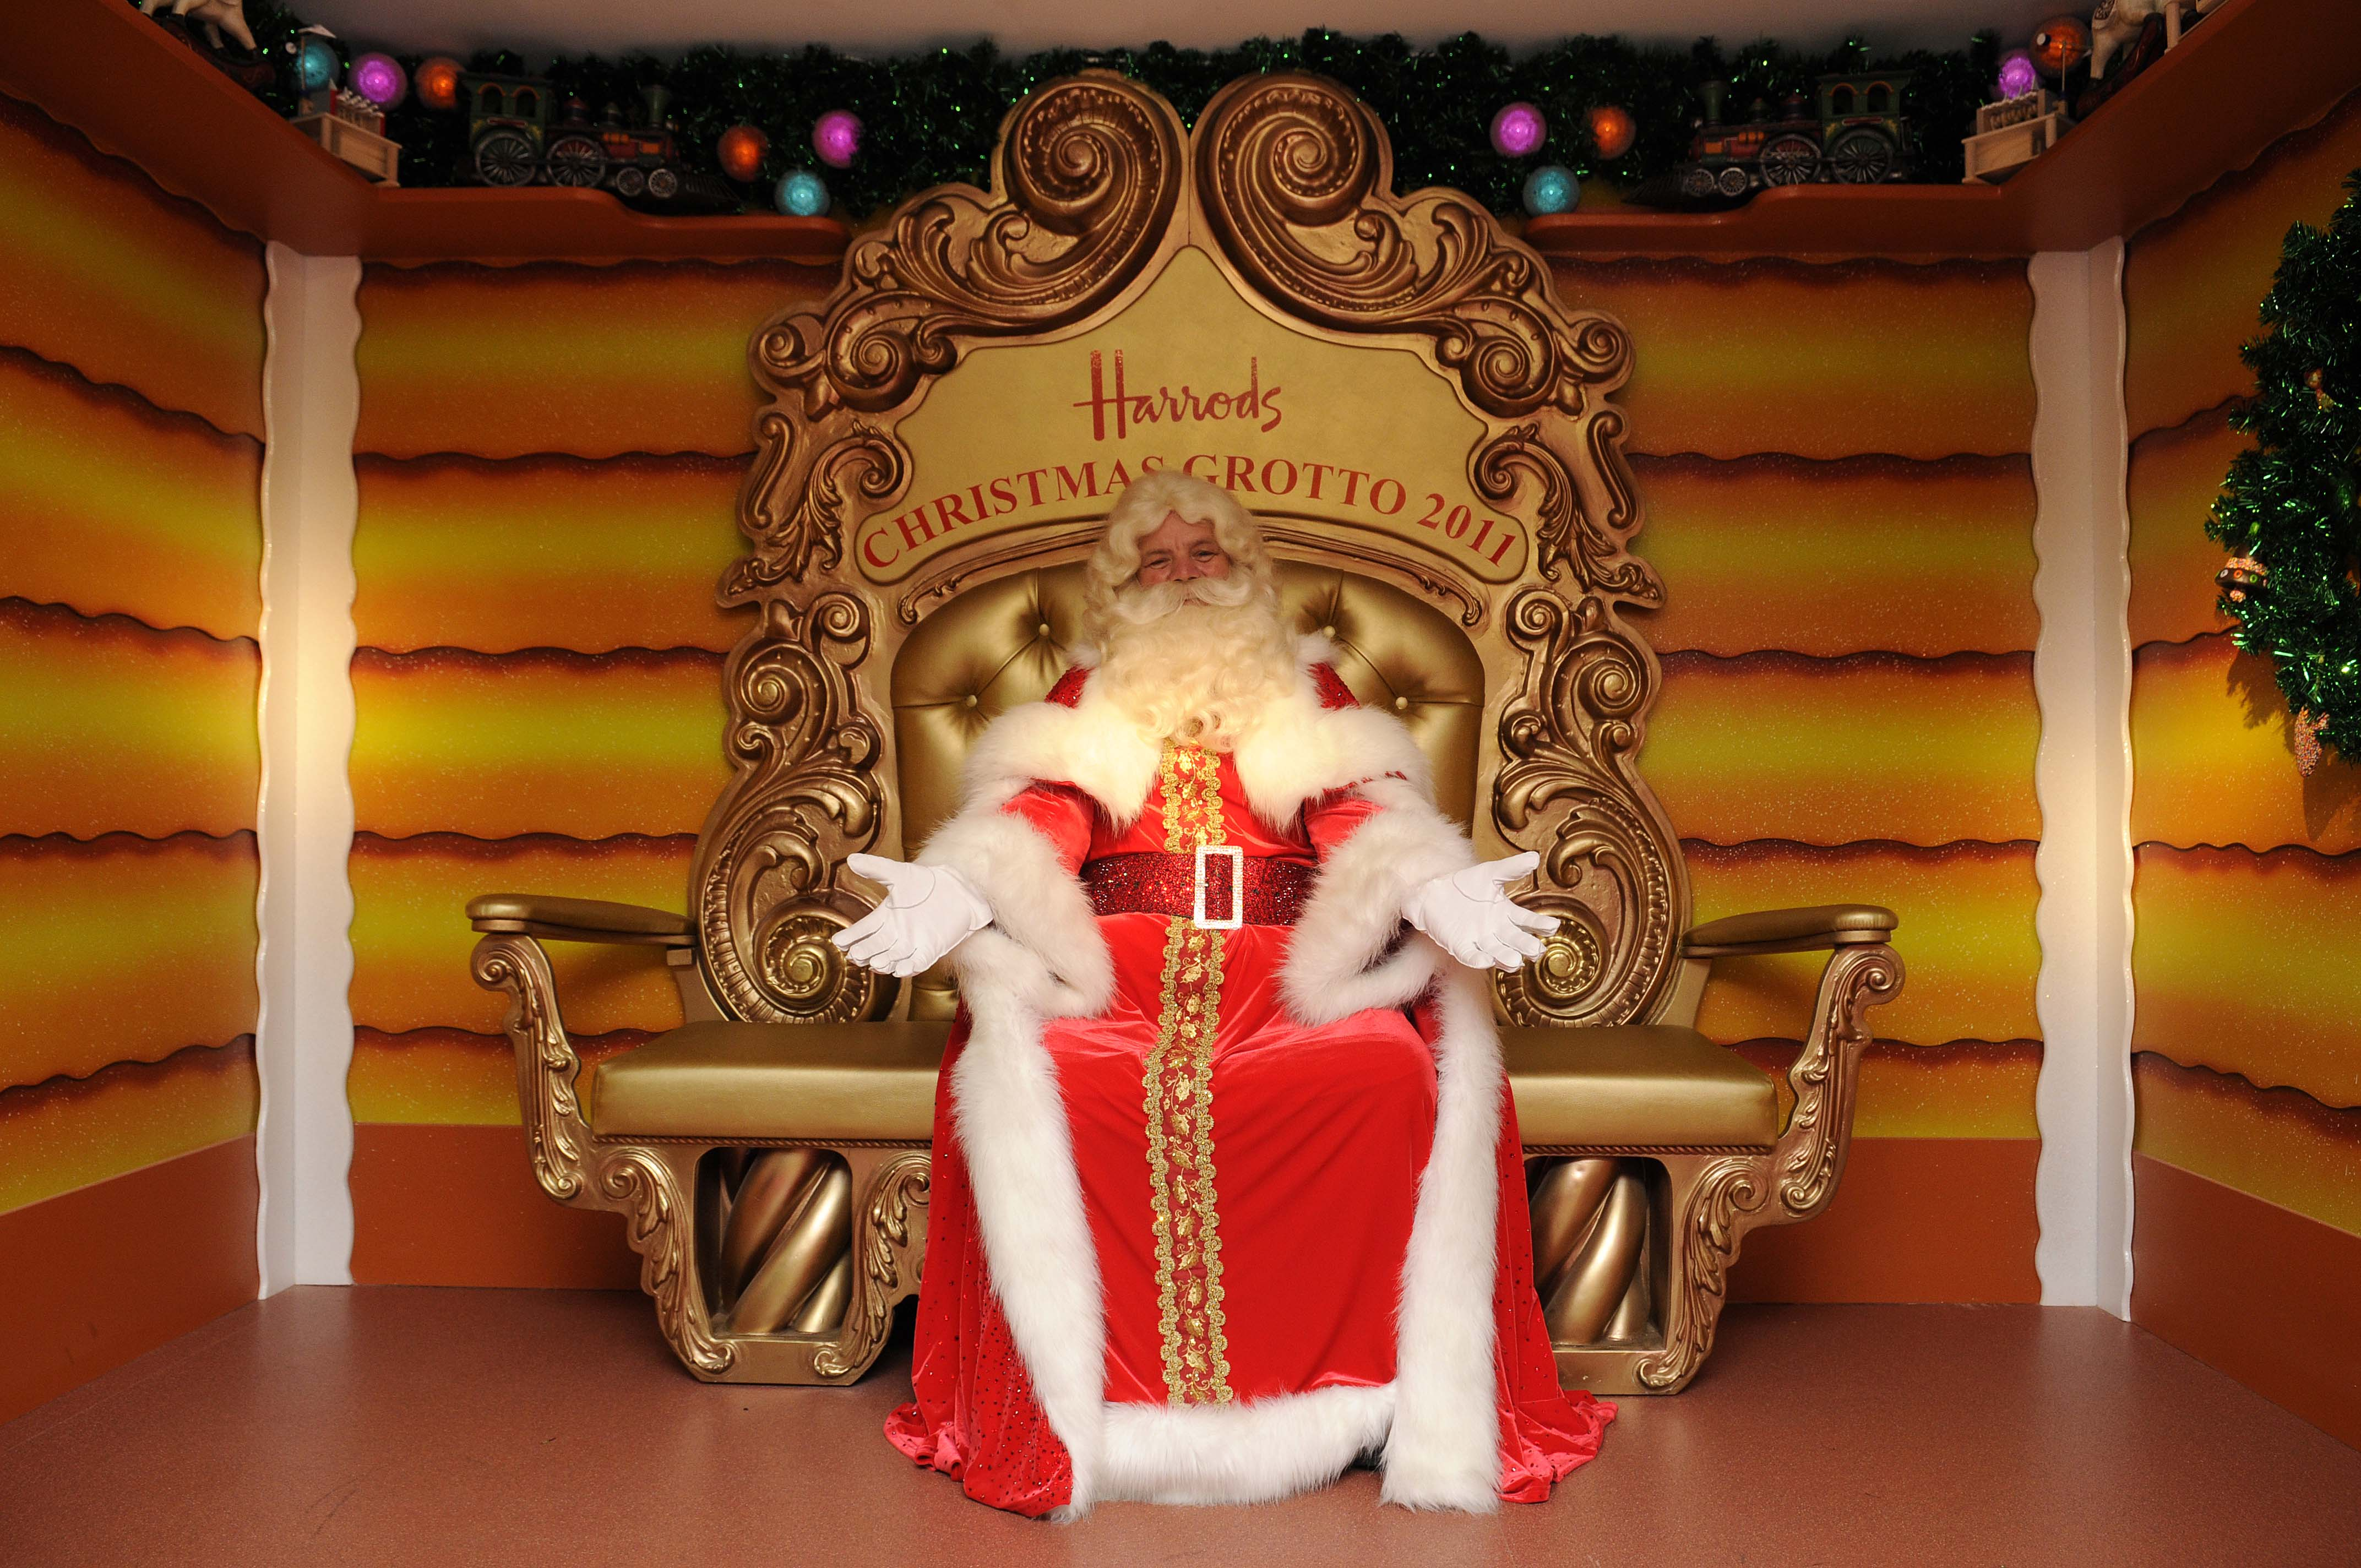 LONDON, UNITED KINGDOM - NOVEMBER 05:  Father Christmas presents Harrods 26th Annual Christmas Parade in the Harrods Christmas Grotto on November 5, in London England. (Photo by Steve Finn/Harrods via Getty Images)